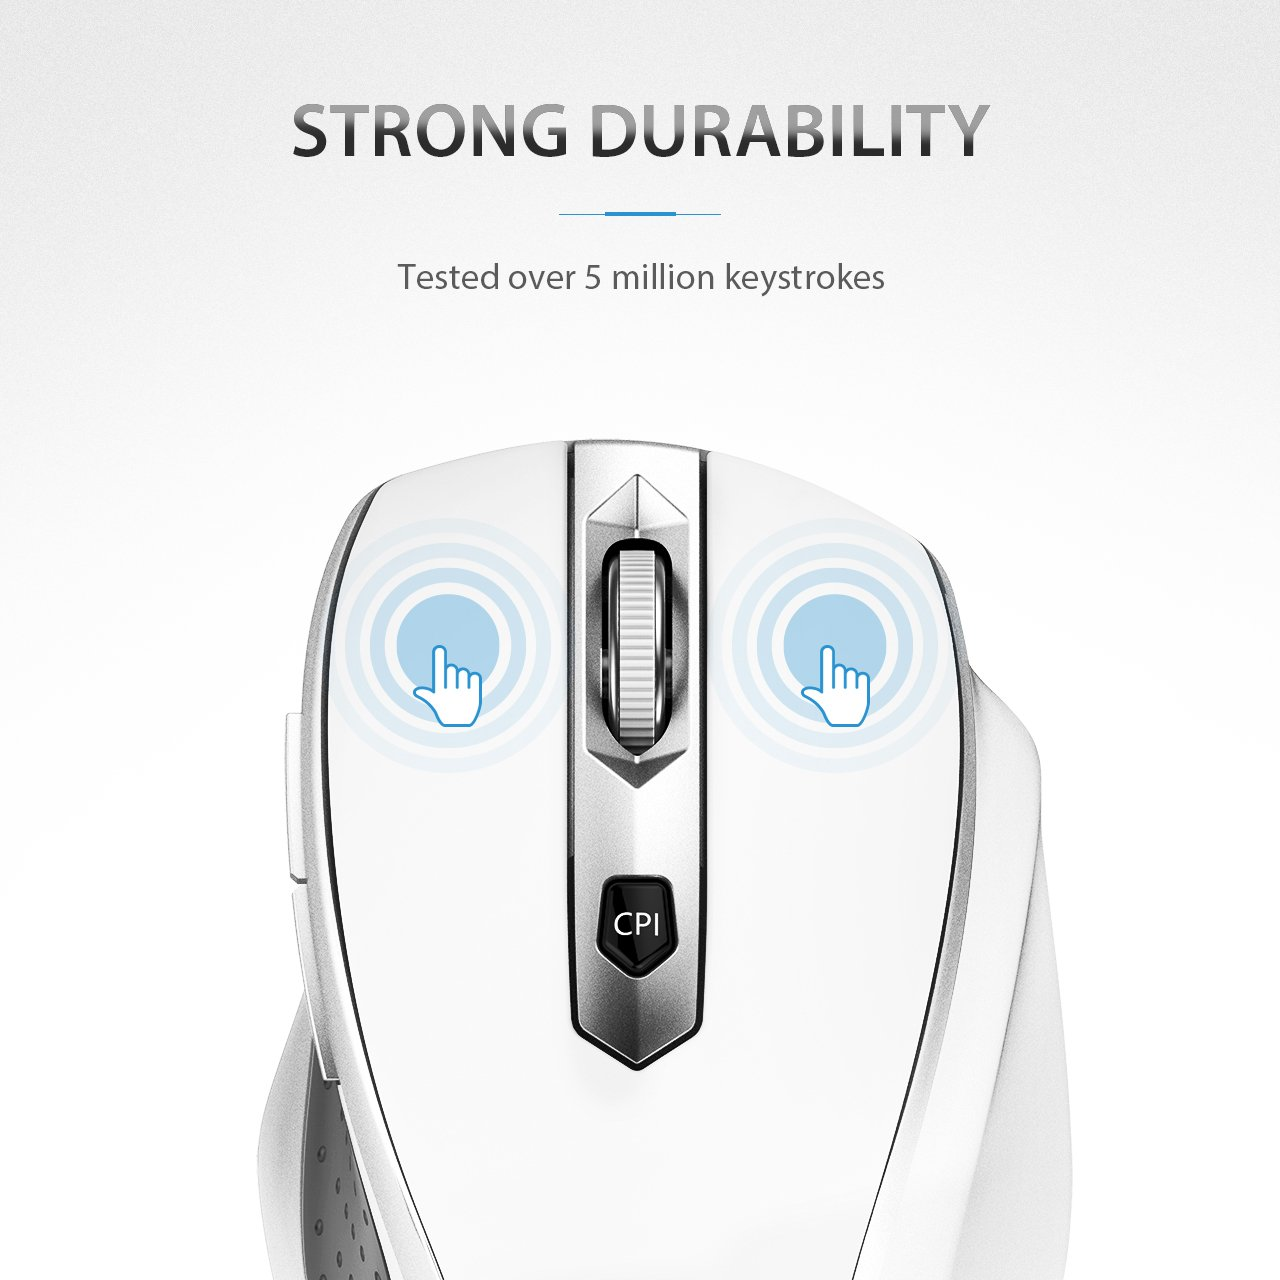 VicTsing MM057 2.4G Wireless Portable Mobile Mouse Optical Mice with USB Receiver, 5 Adjustable DPI Levels, 6 Buttons for Notebook, PC, Laptop, Computer, Macbook - White by VicTsing (Image #6)